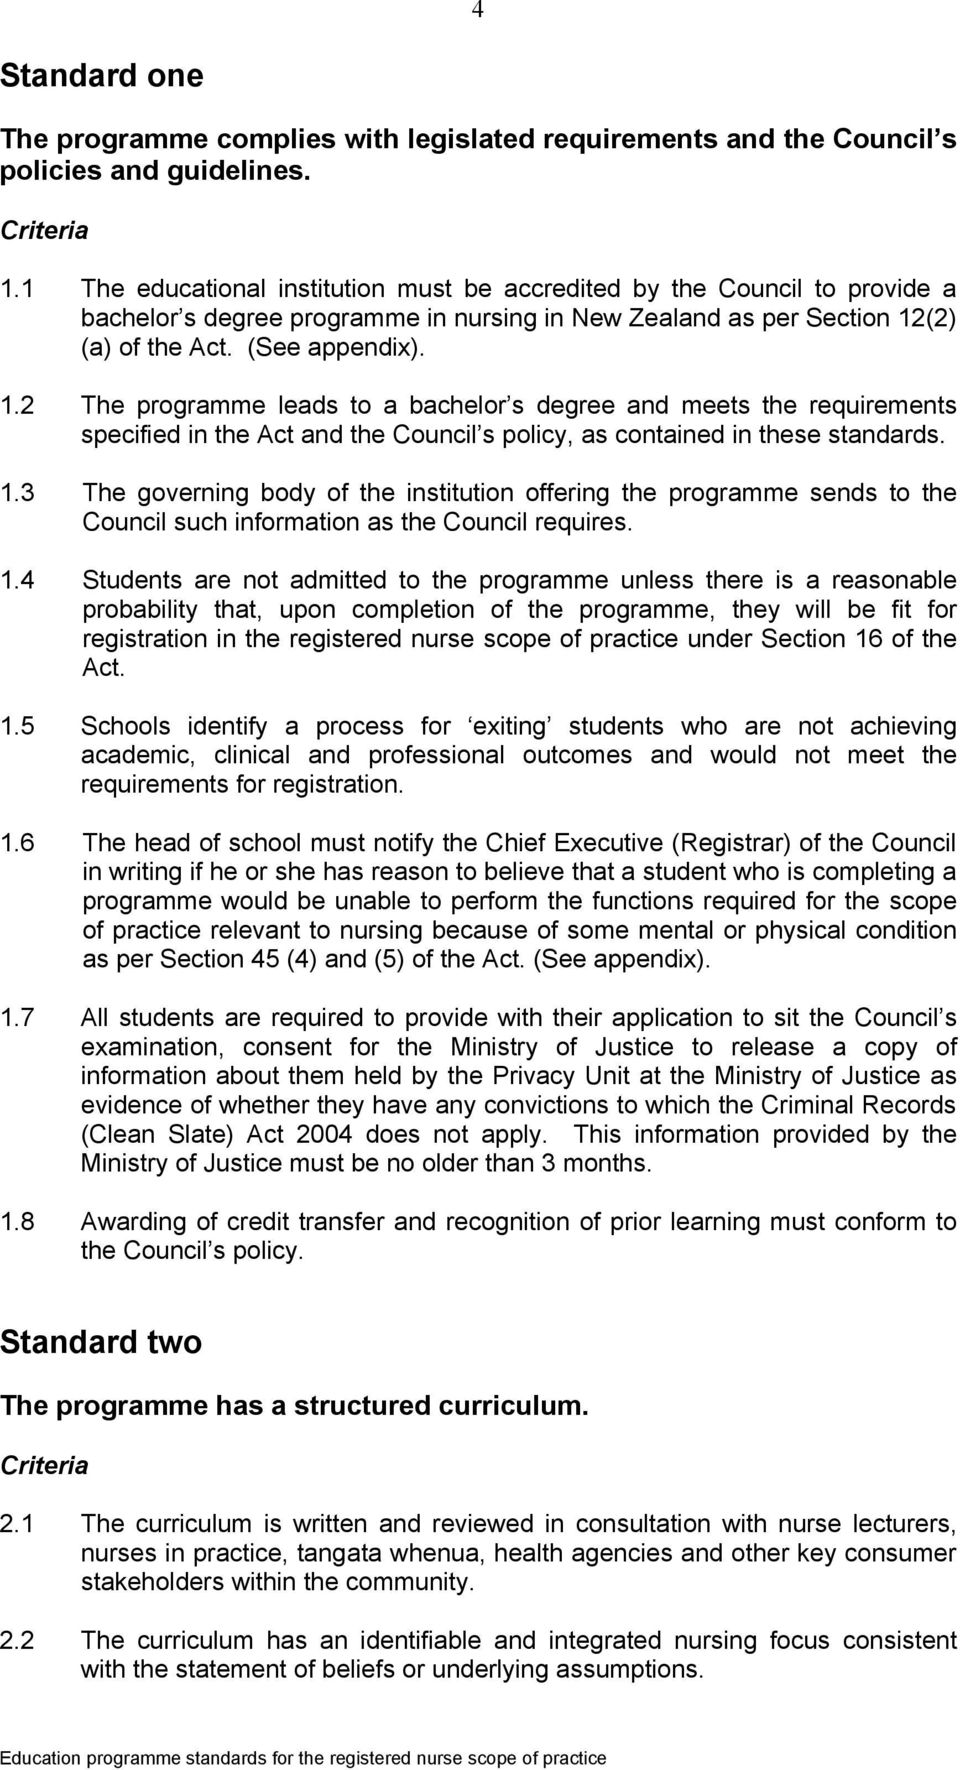 (2) (a) of the Act. (See appendix). 1.2 The programme leads to a bachelor s degree and meets the requirements specified in the Act and the Council s policy, as contained in these standards. 1.3 The governing body of the institution offering the programme sends to the Council such information as the Council requires.